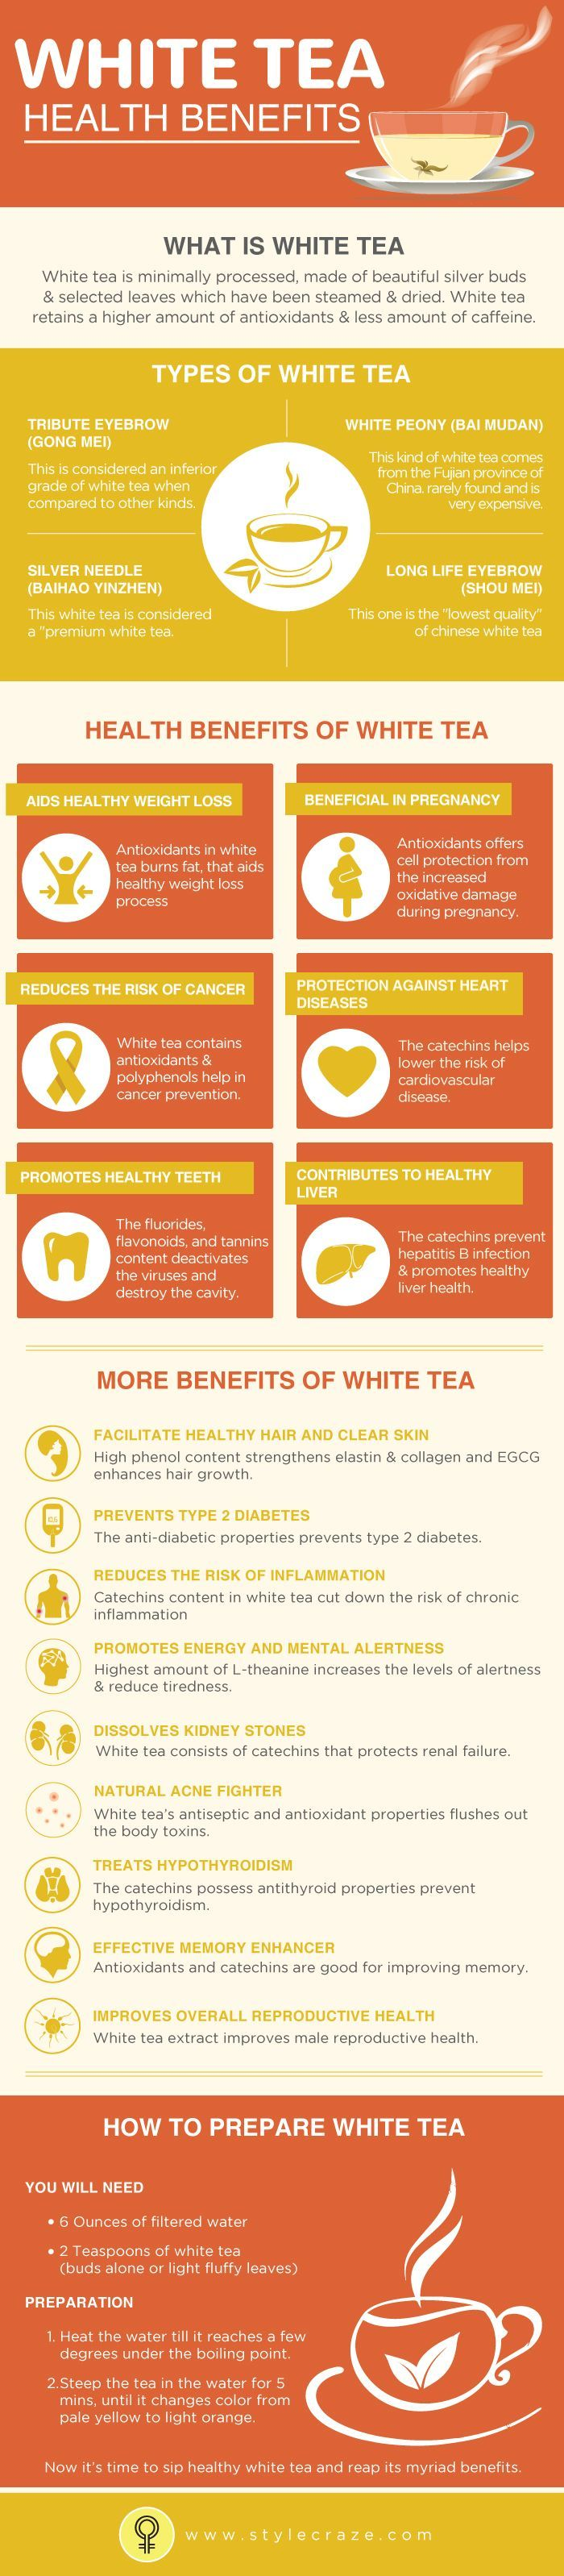 White tea offers immense health benefits. But for a long time, the white tea benefits were only known to Asians. Check out these proven benefits that will surprise you